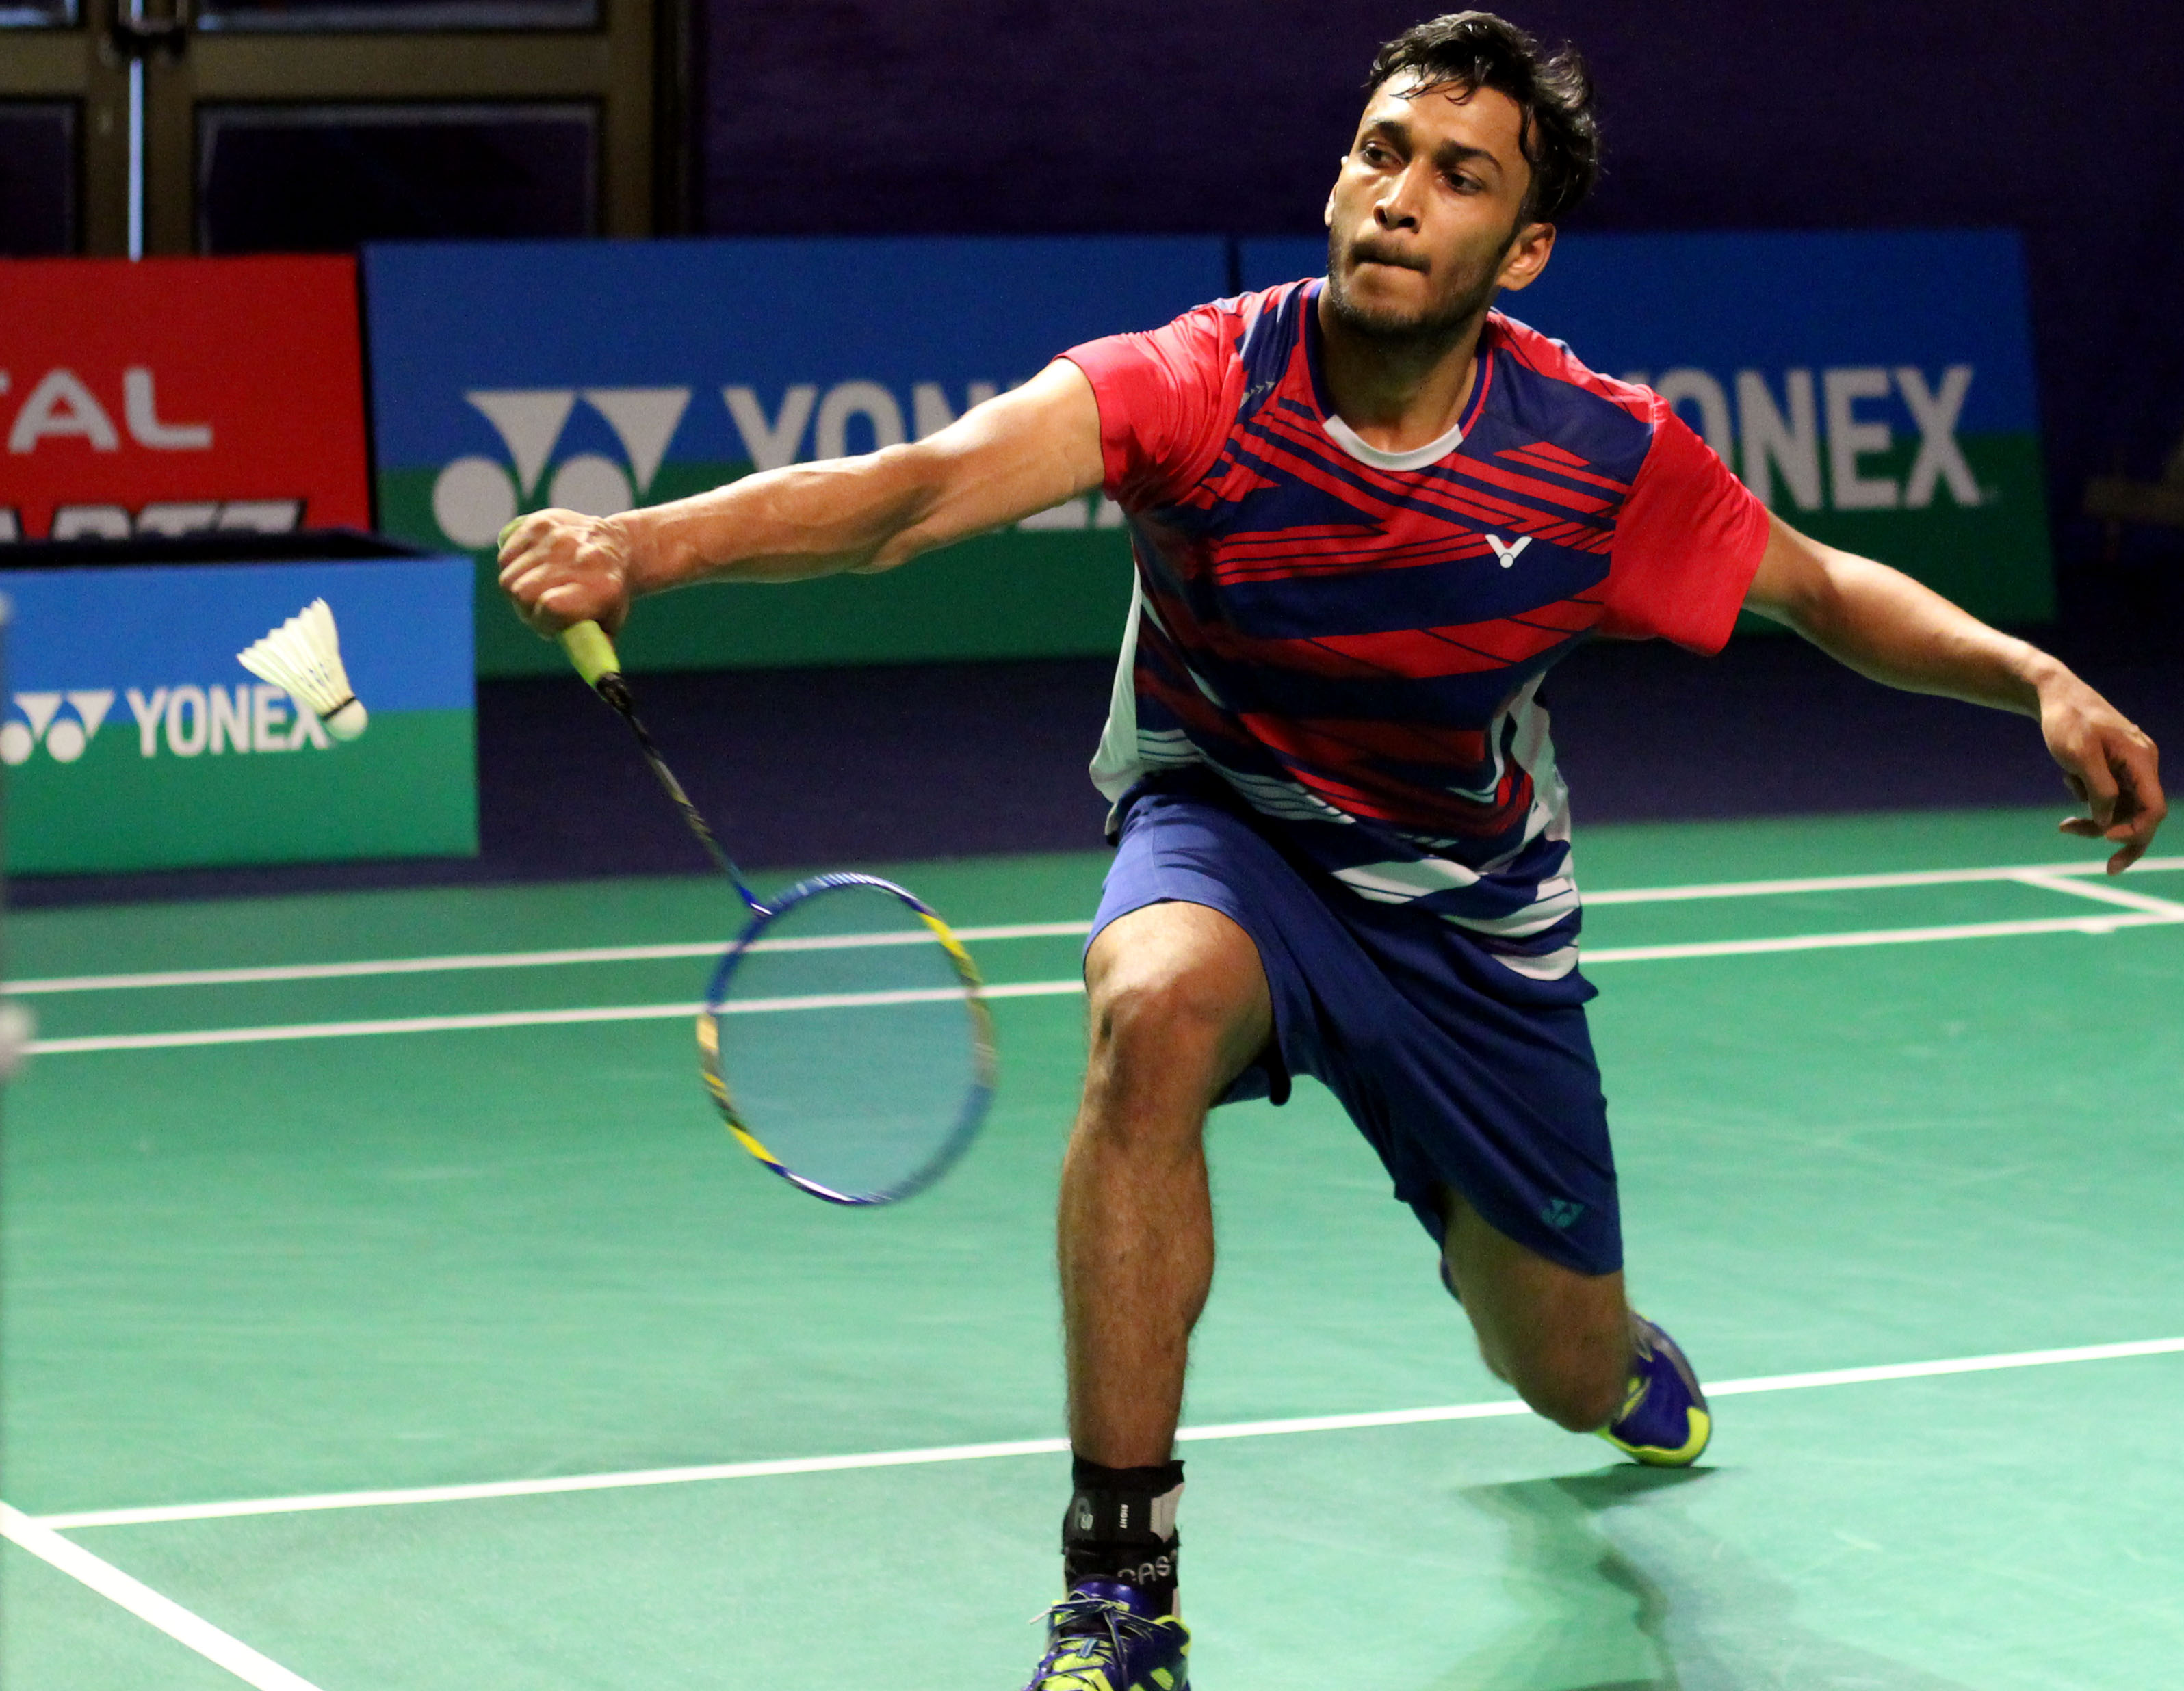 Badminton: 8 Indian players reach main draw of India Open